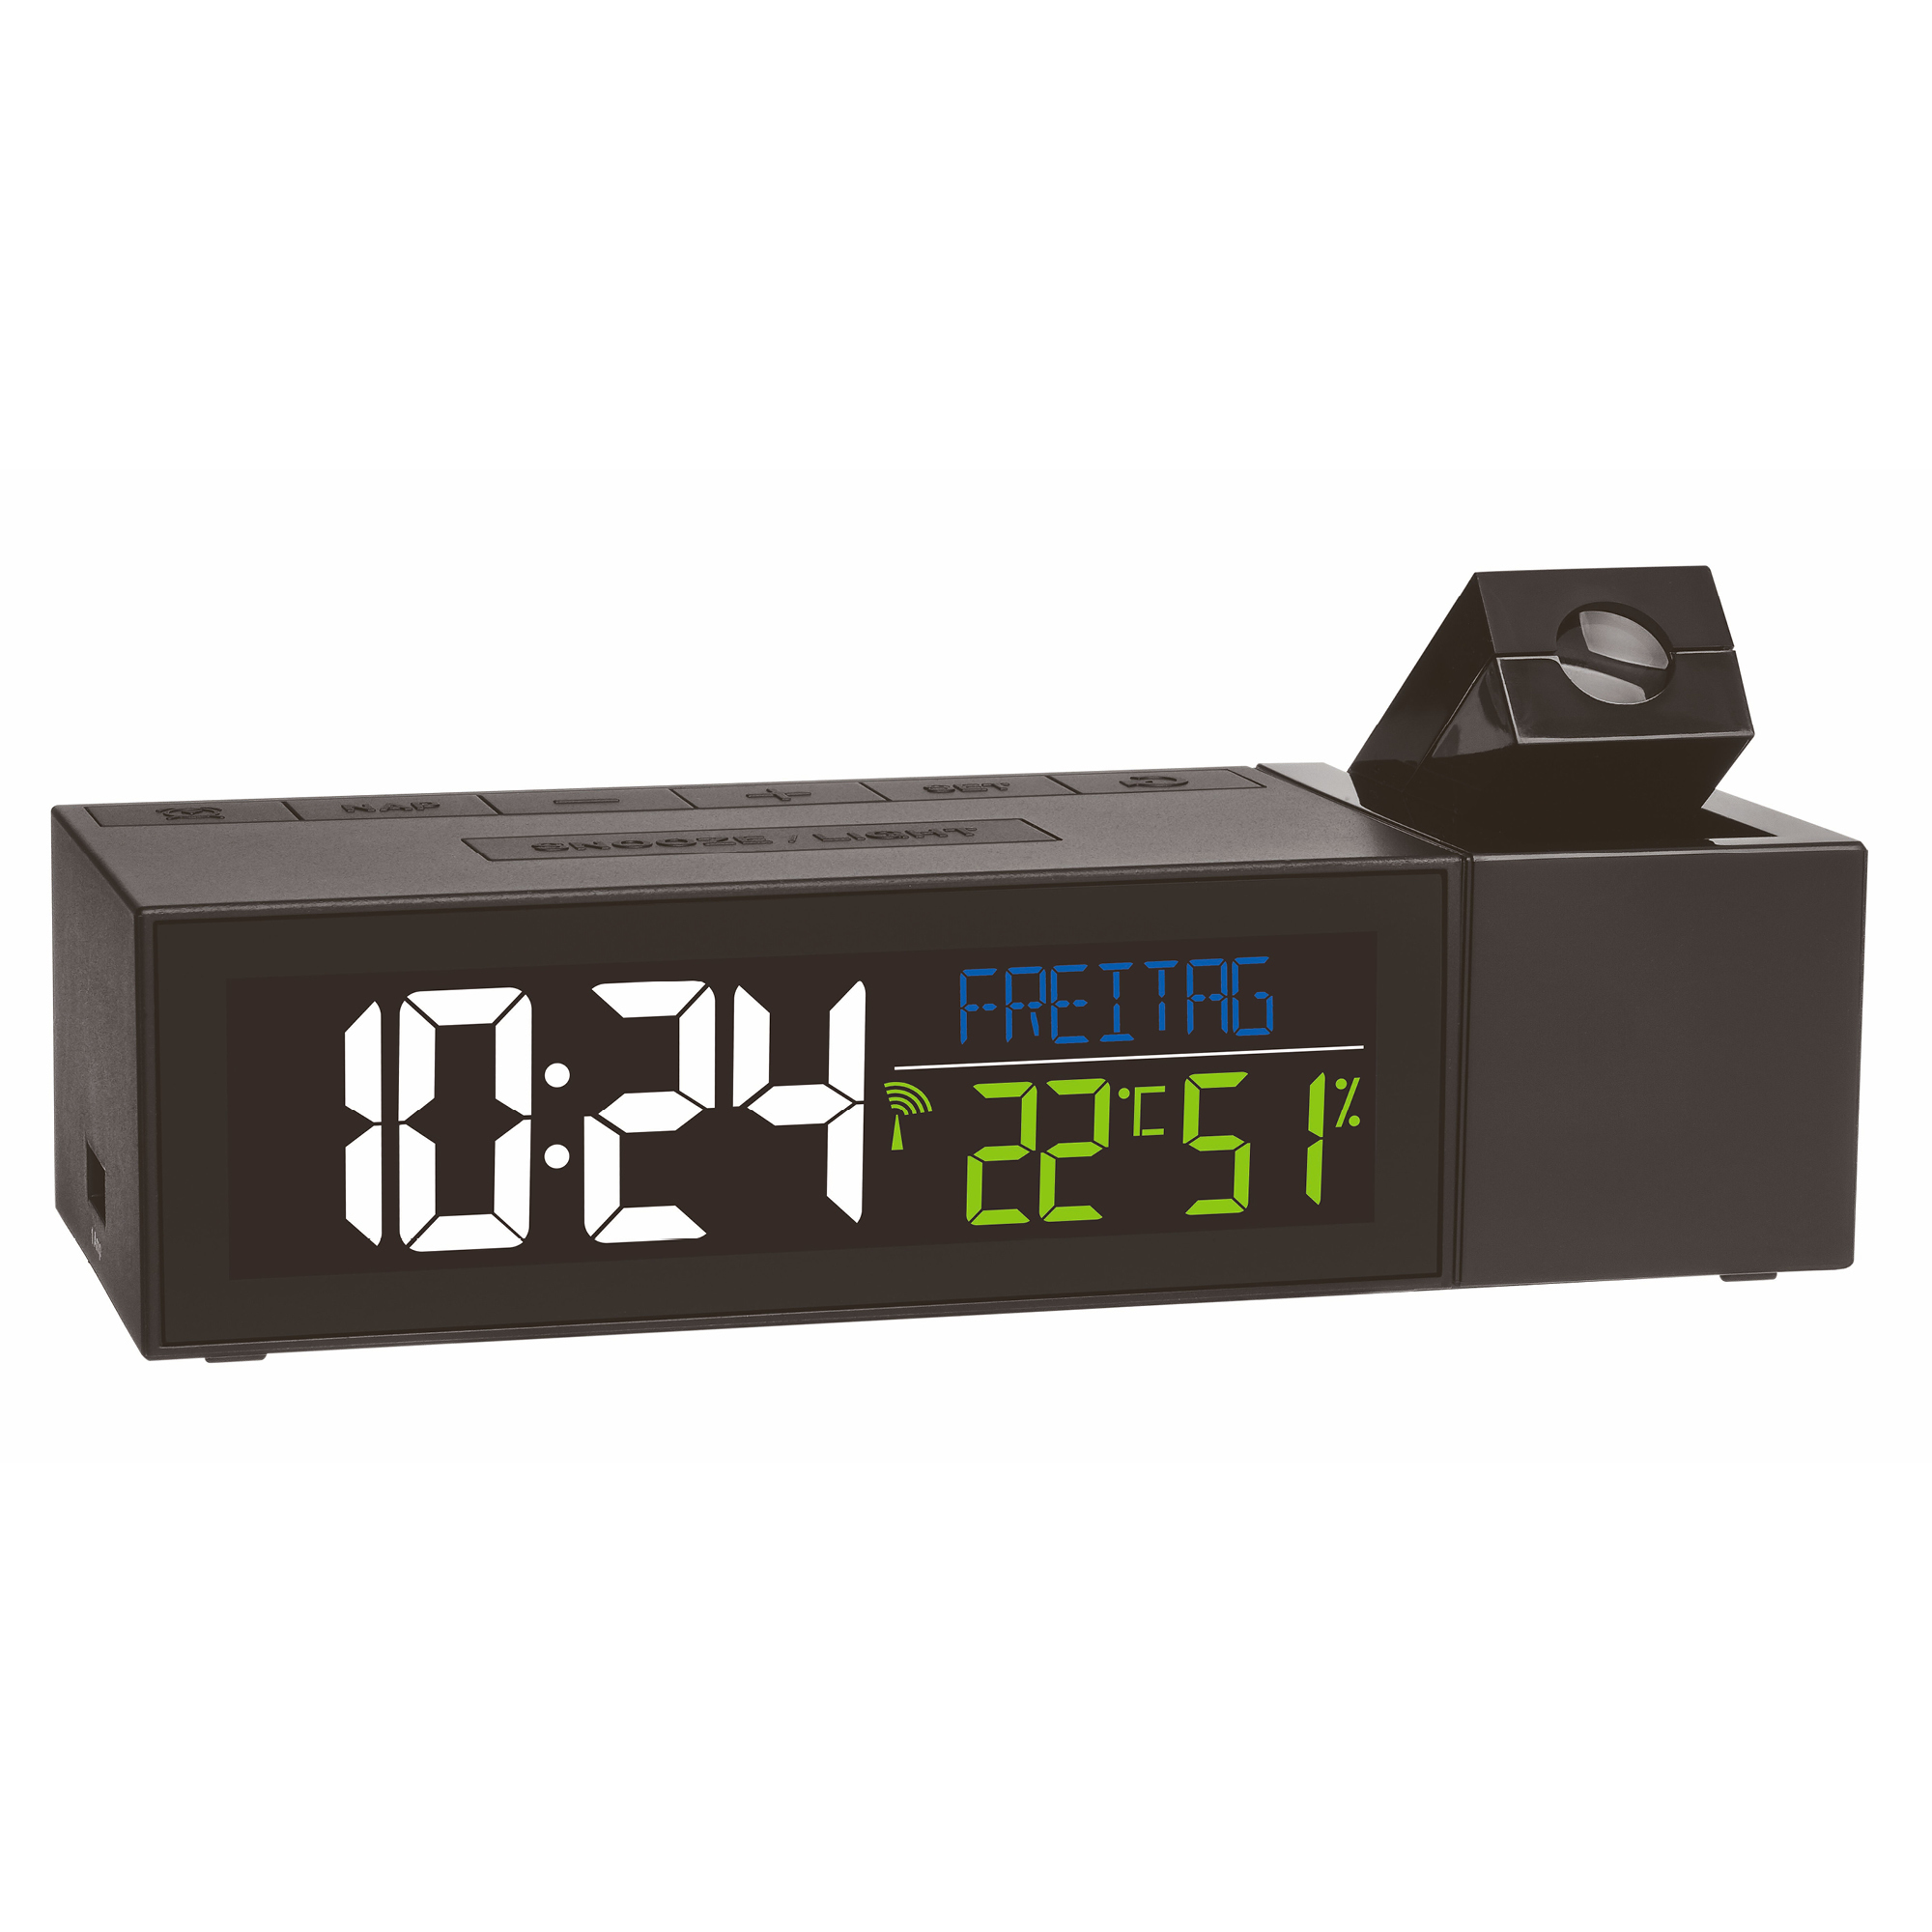 Radio Controlled Projection Alarm Clock With Indoor